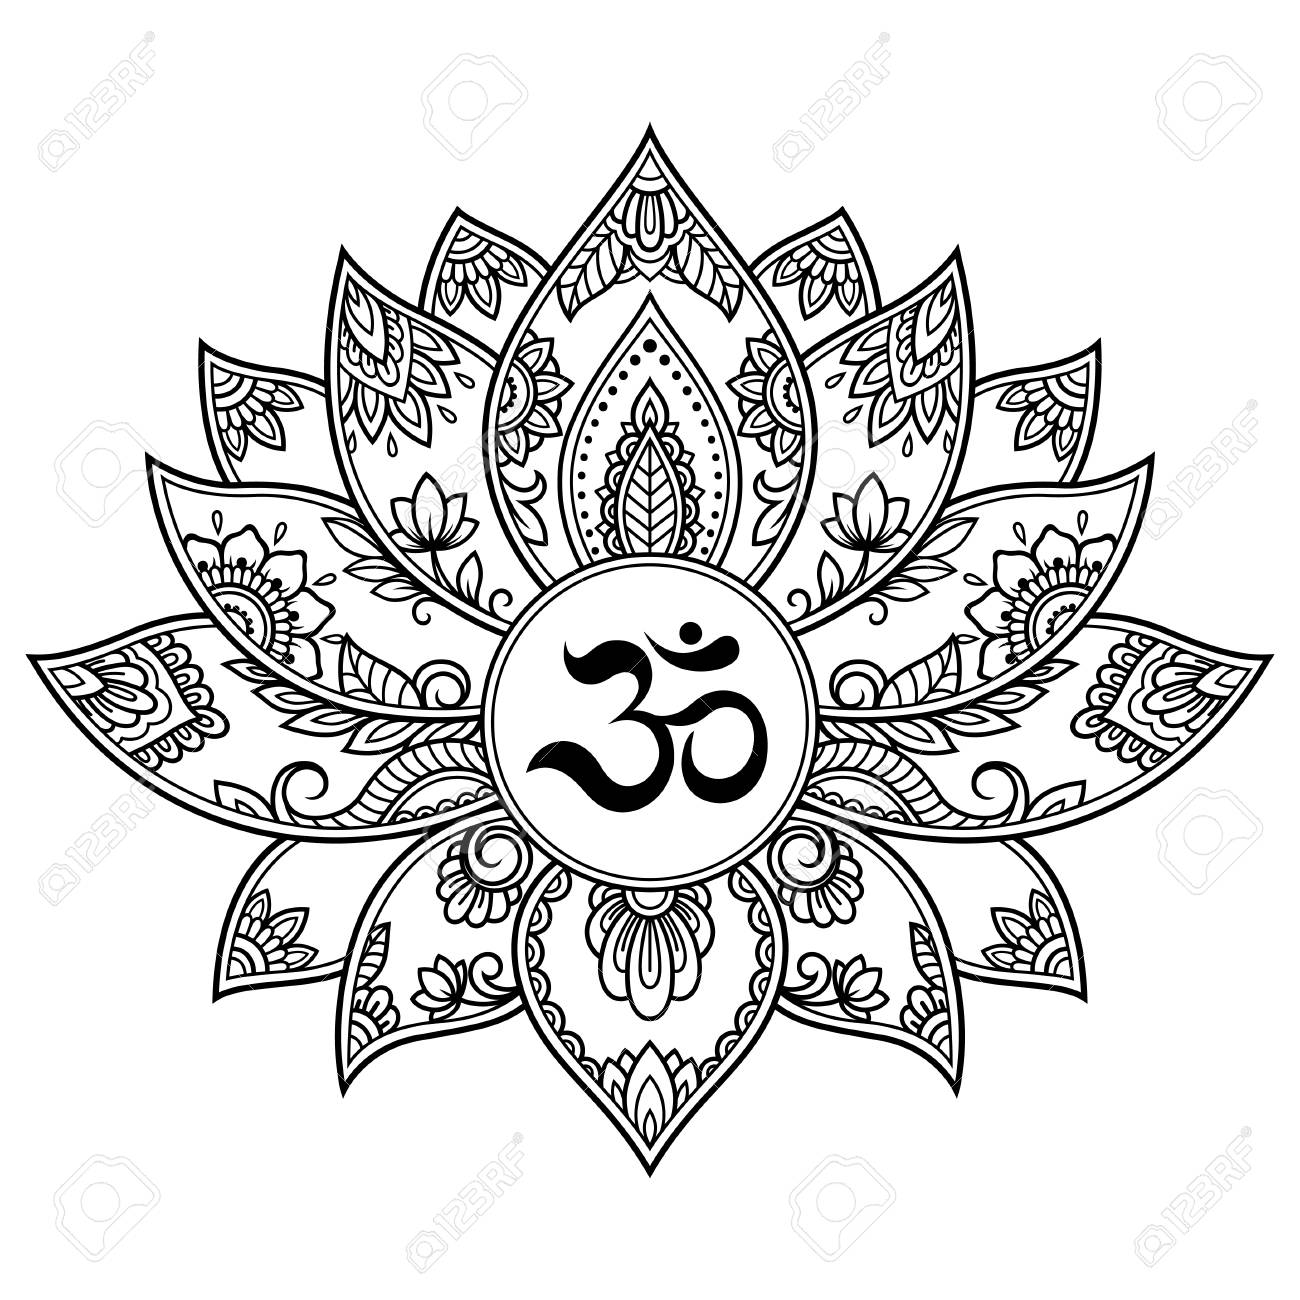 Mehndi Lotus Flower Pattern With Mantra Om Symbol For Henna Drawing